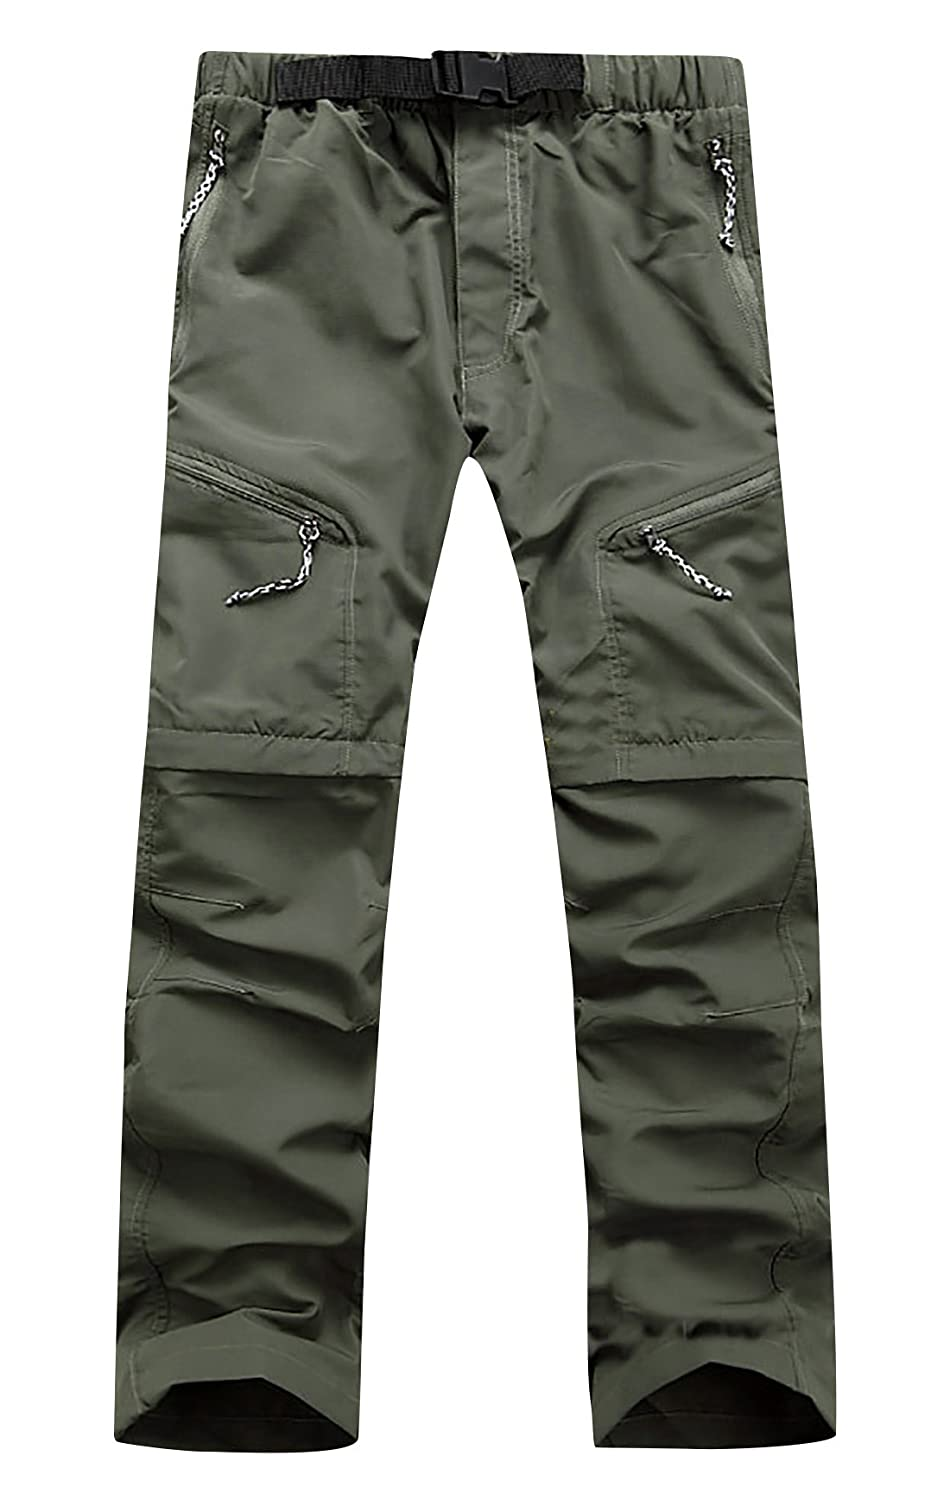 9655aa13 Zip-Off Legs Convert Pants to Shorts: it could be pants and could easily  change to shorts, different style to meet your require